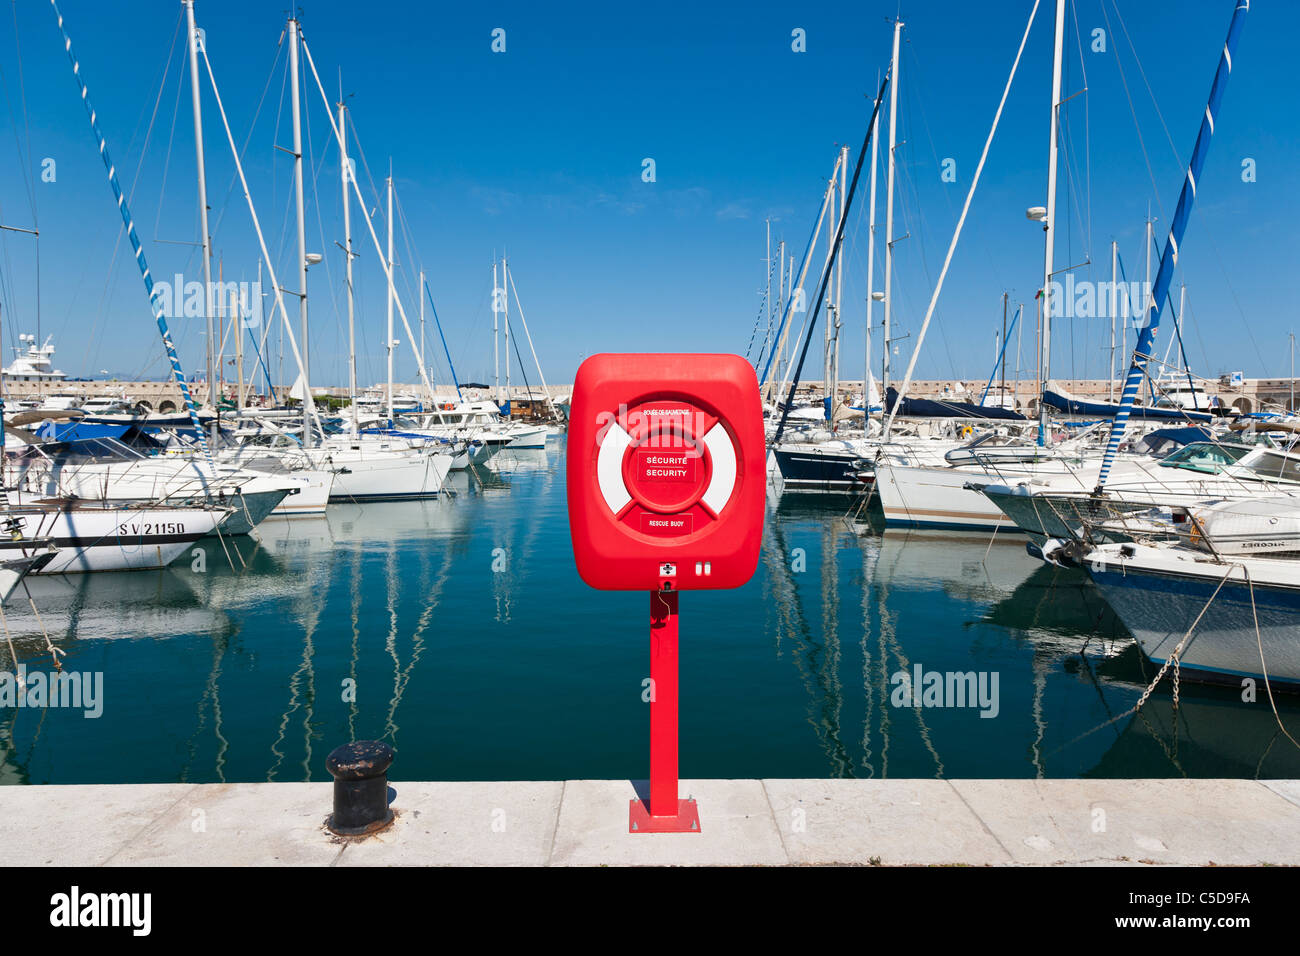 Life saving ring in front of Boats and yachts in Antibes Marina, Antibes, Cote d'Azure, France - Stock Image